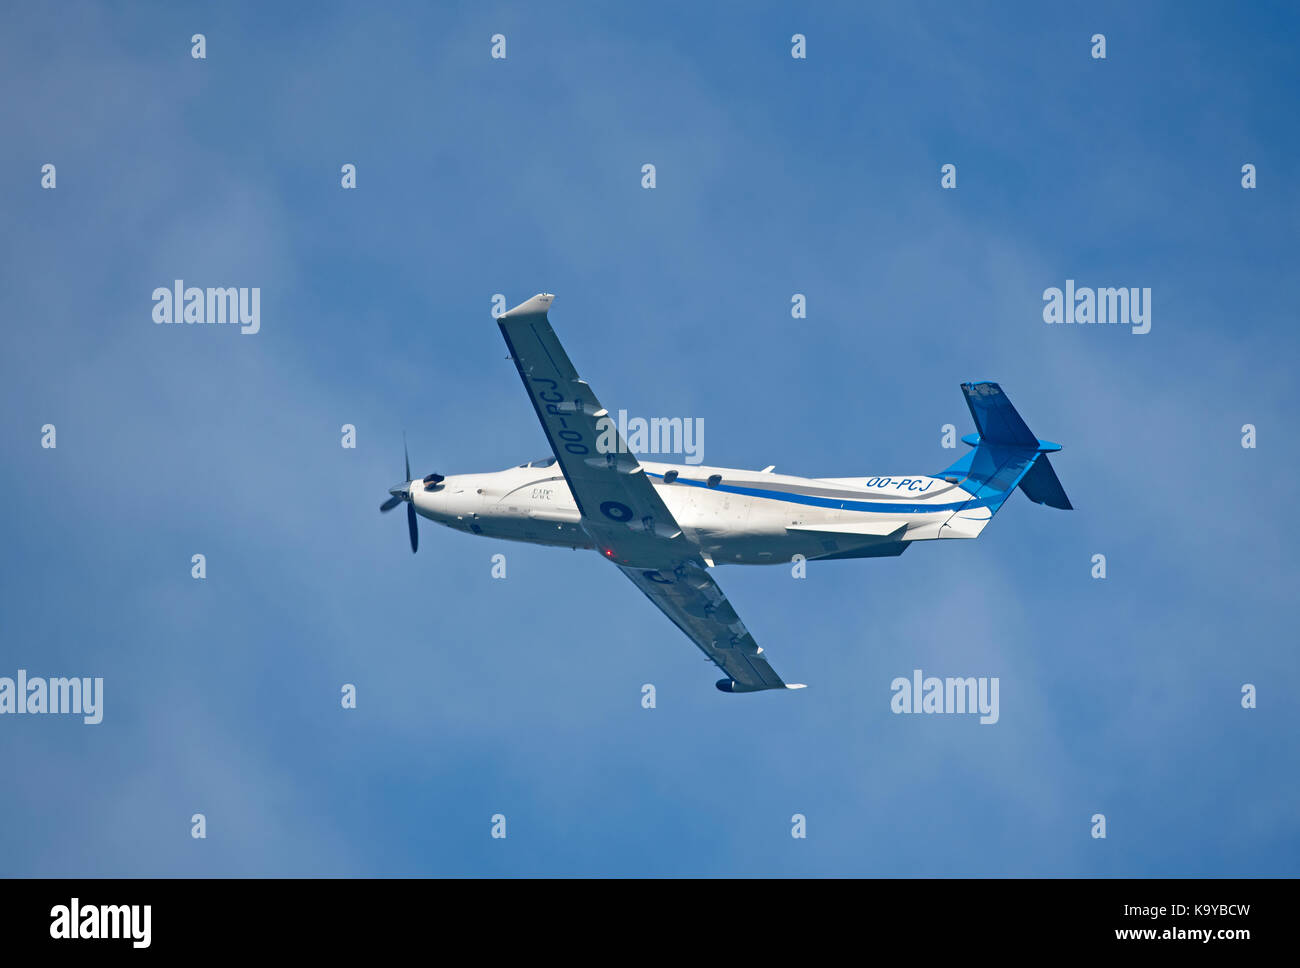 Pilates PC12 NG departing Inverness airport in Highland Scotland. Stock Photo